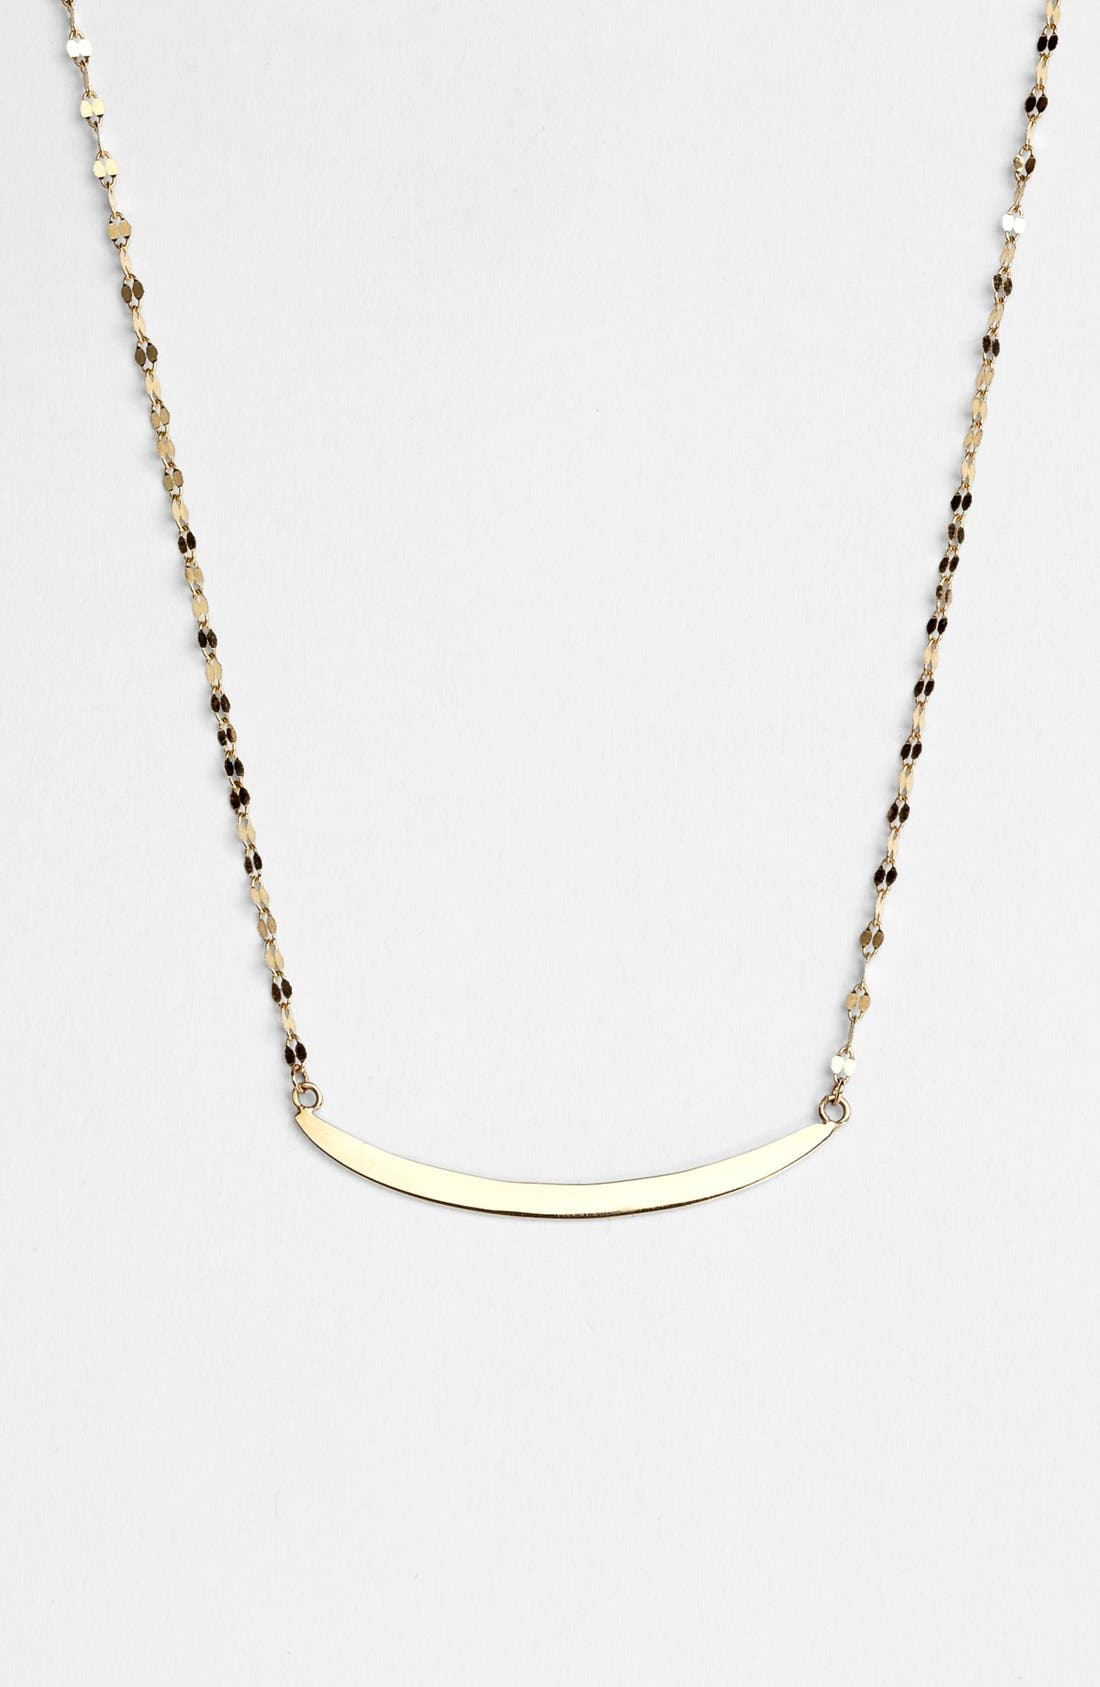 Main Image - Lana Jewelry 'Curve' Necklace